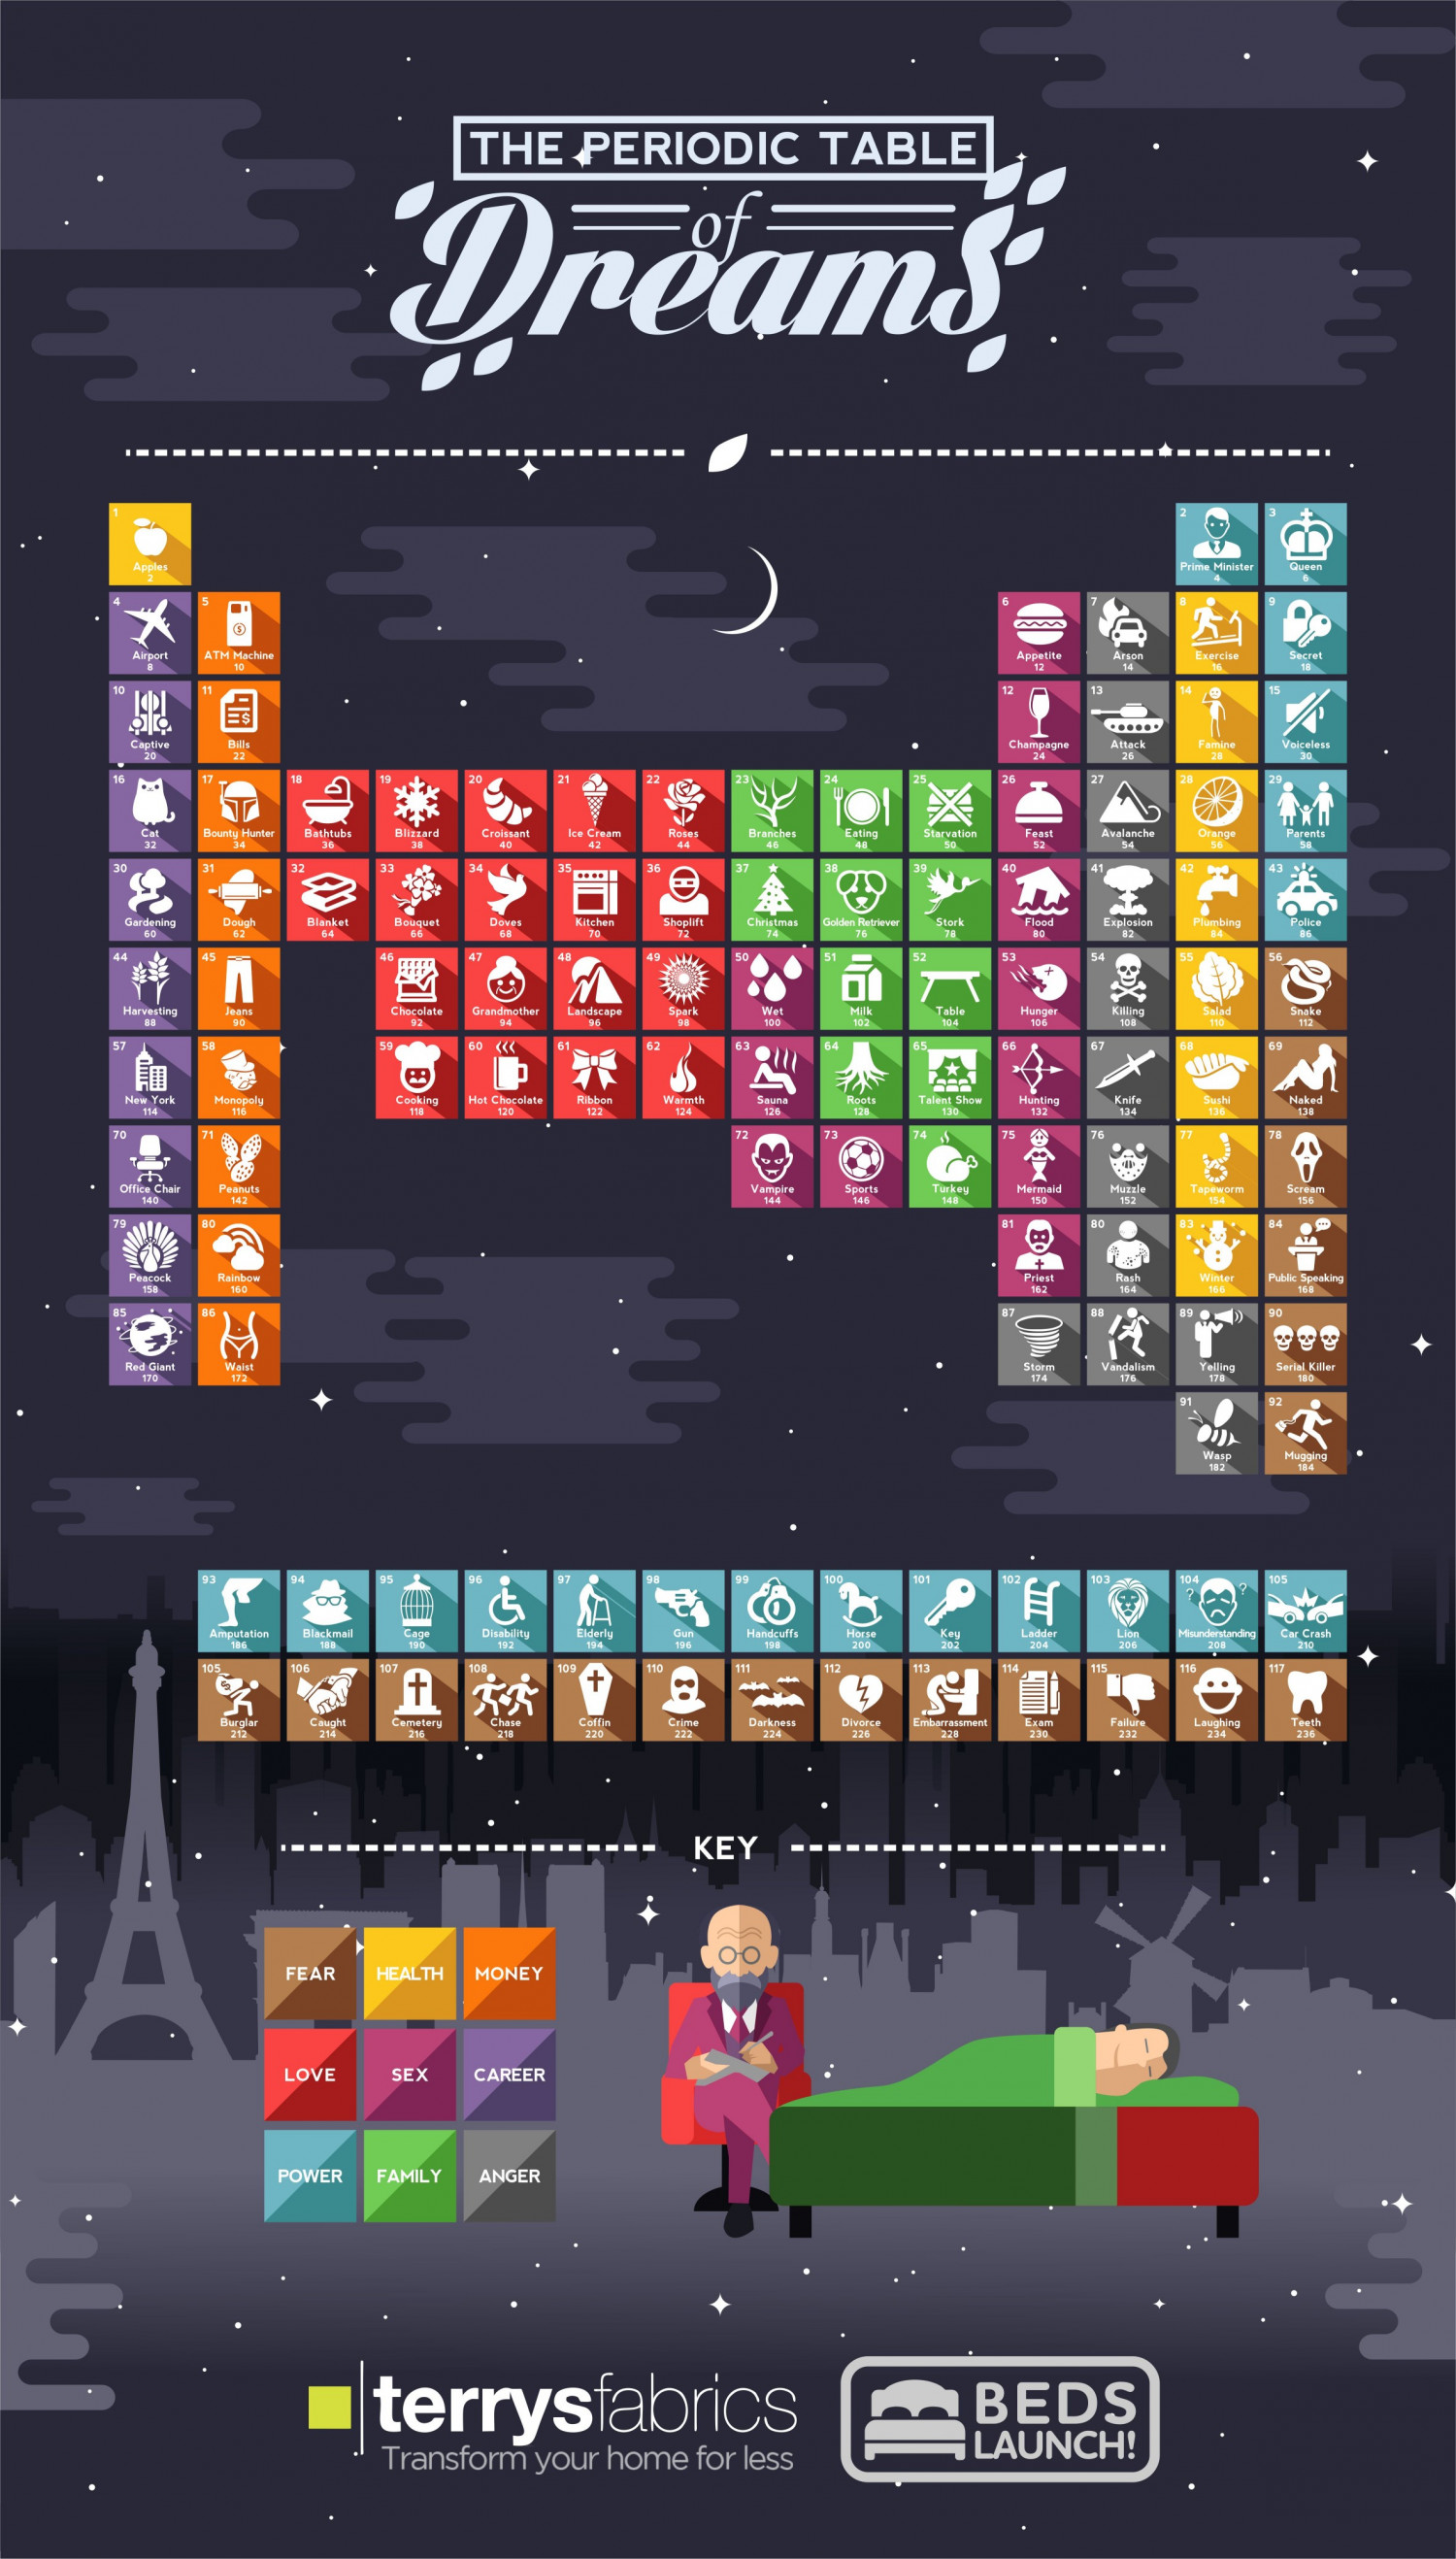 The Periodic Table of Dreams Infographic